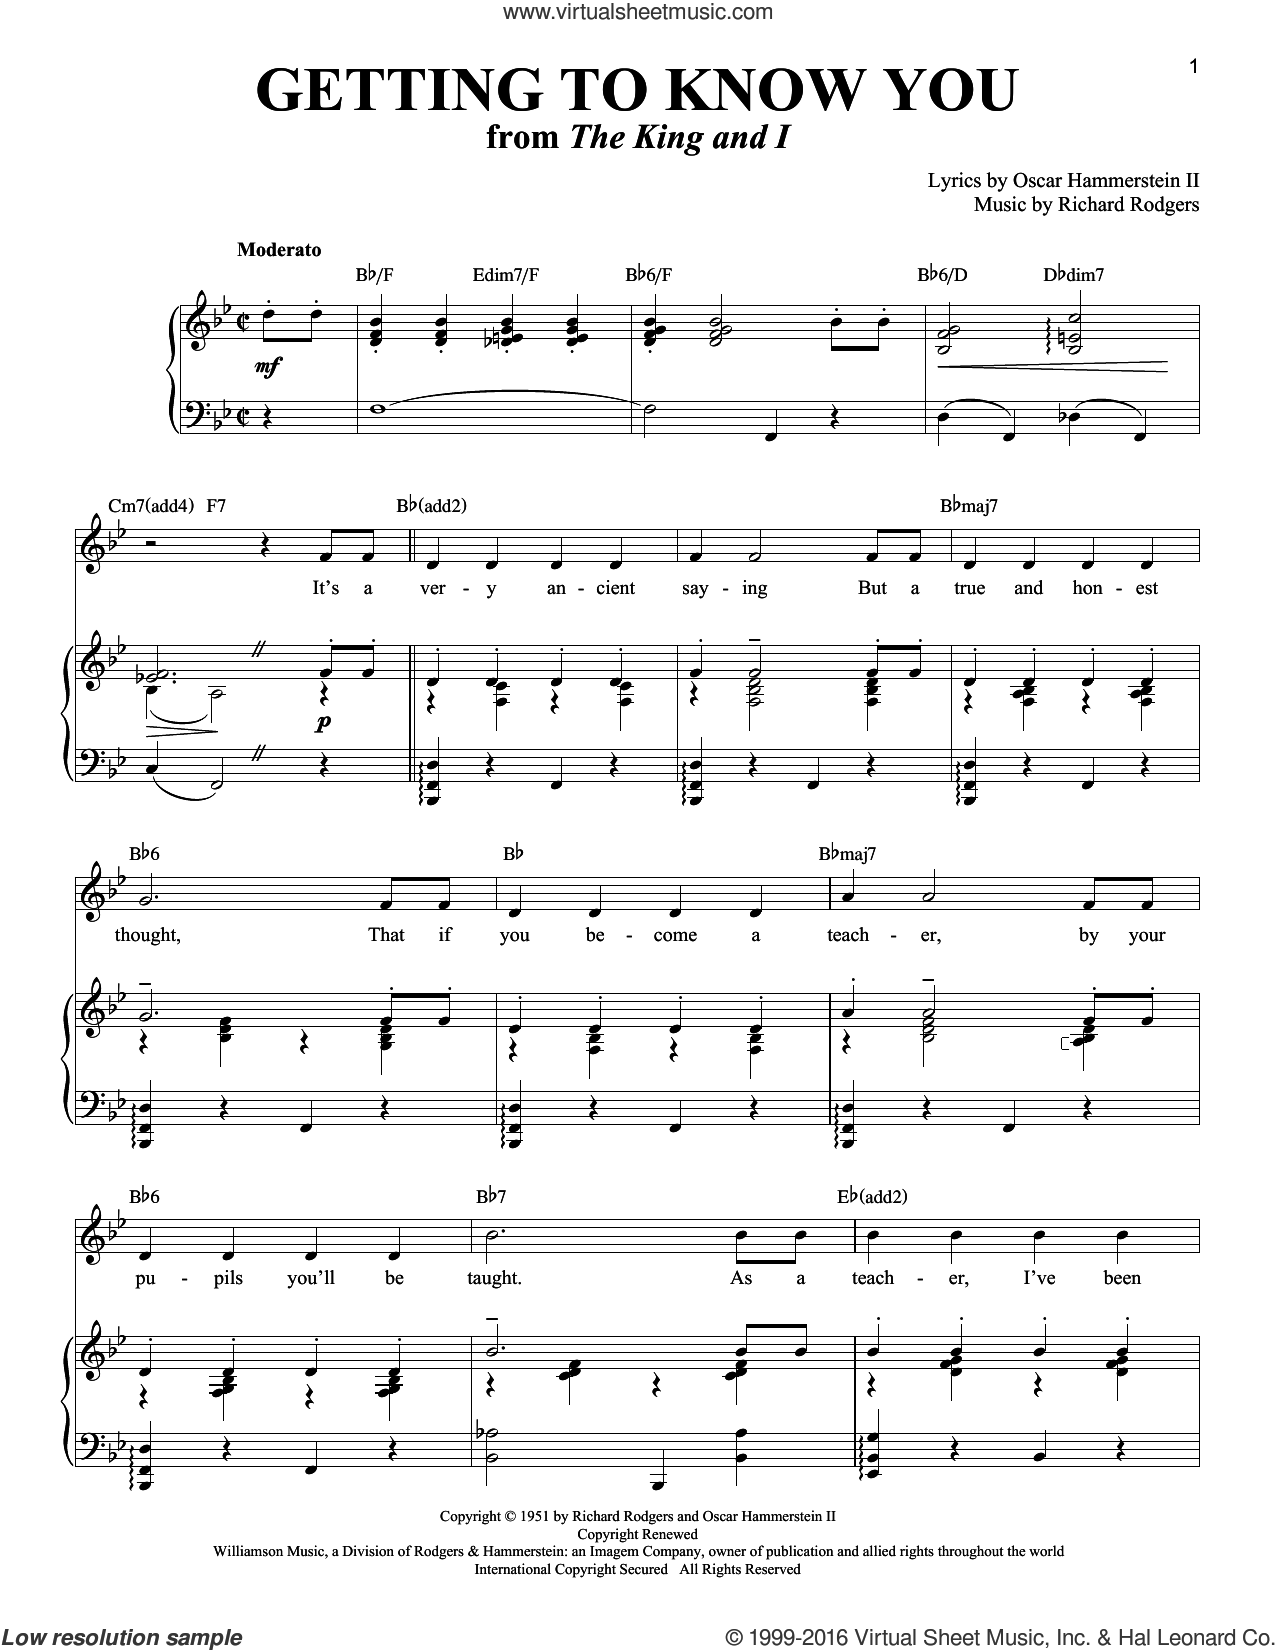 Getting To Know You sheet music for voice and piano by Rodgers & Hammerstein, Oscar II Hammerstein and Richard Rodgers. Score Image Preview.